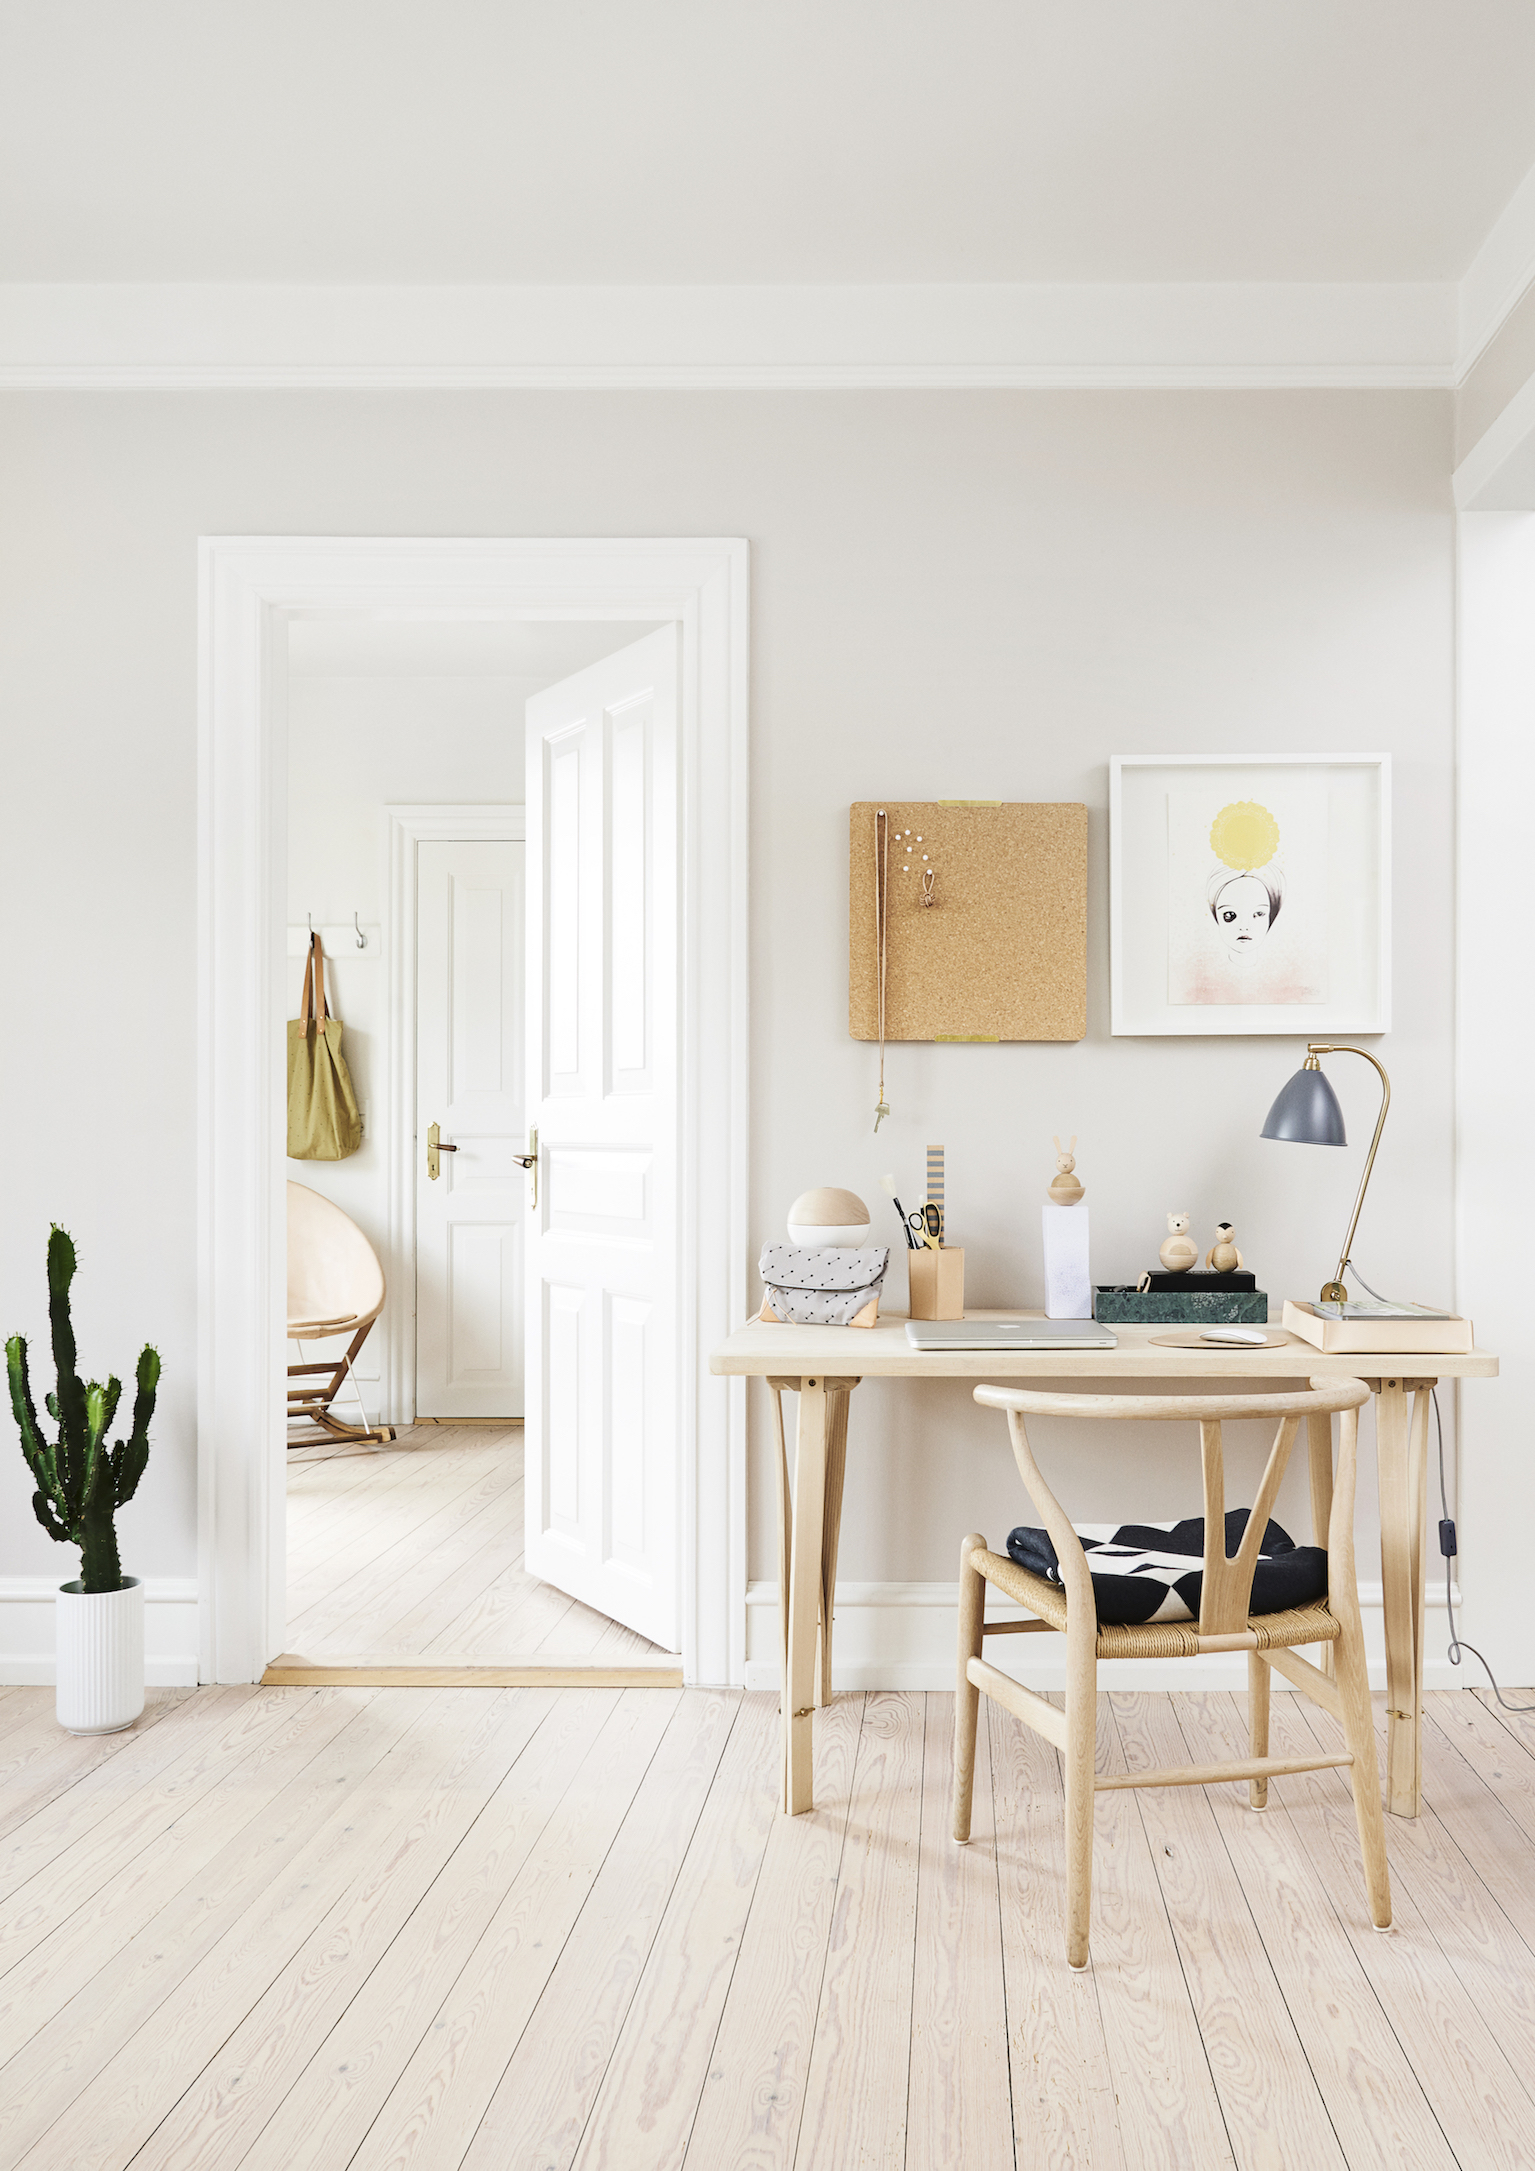 Founder of OYOY and homeowner Lotte Fynboe likes a simple, playful interior with graphic shapes | © Emil Monty Freddie / Gestalten